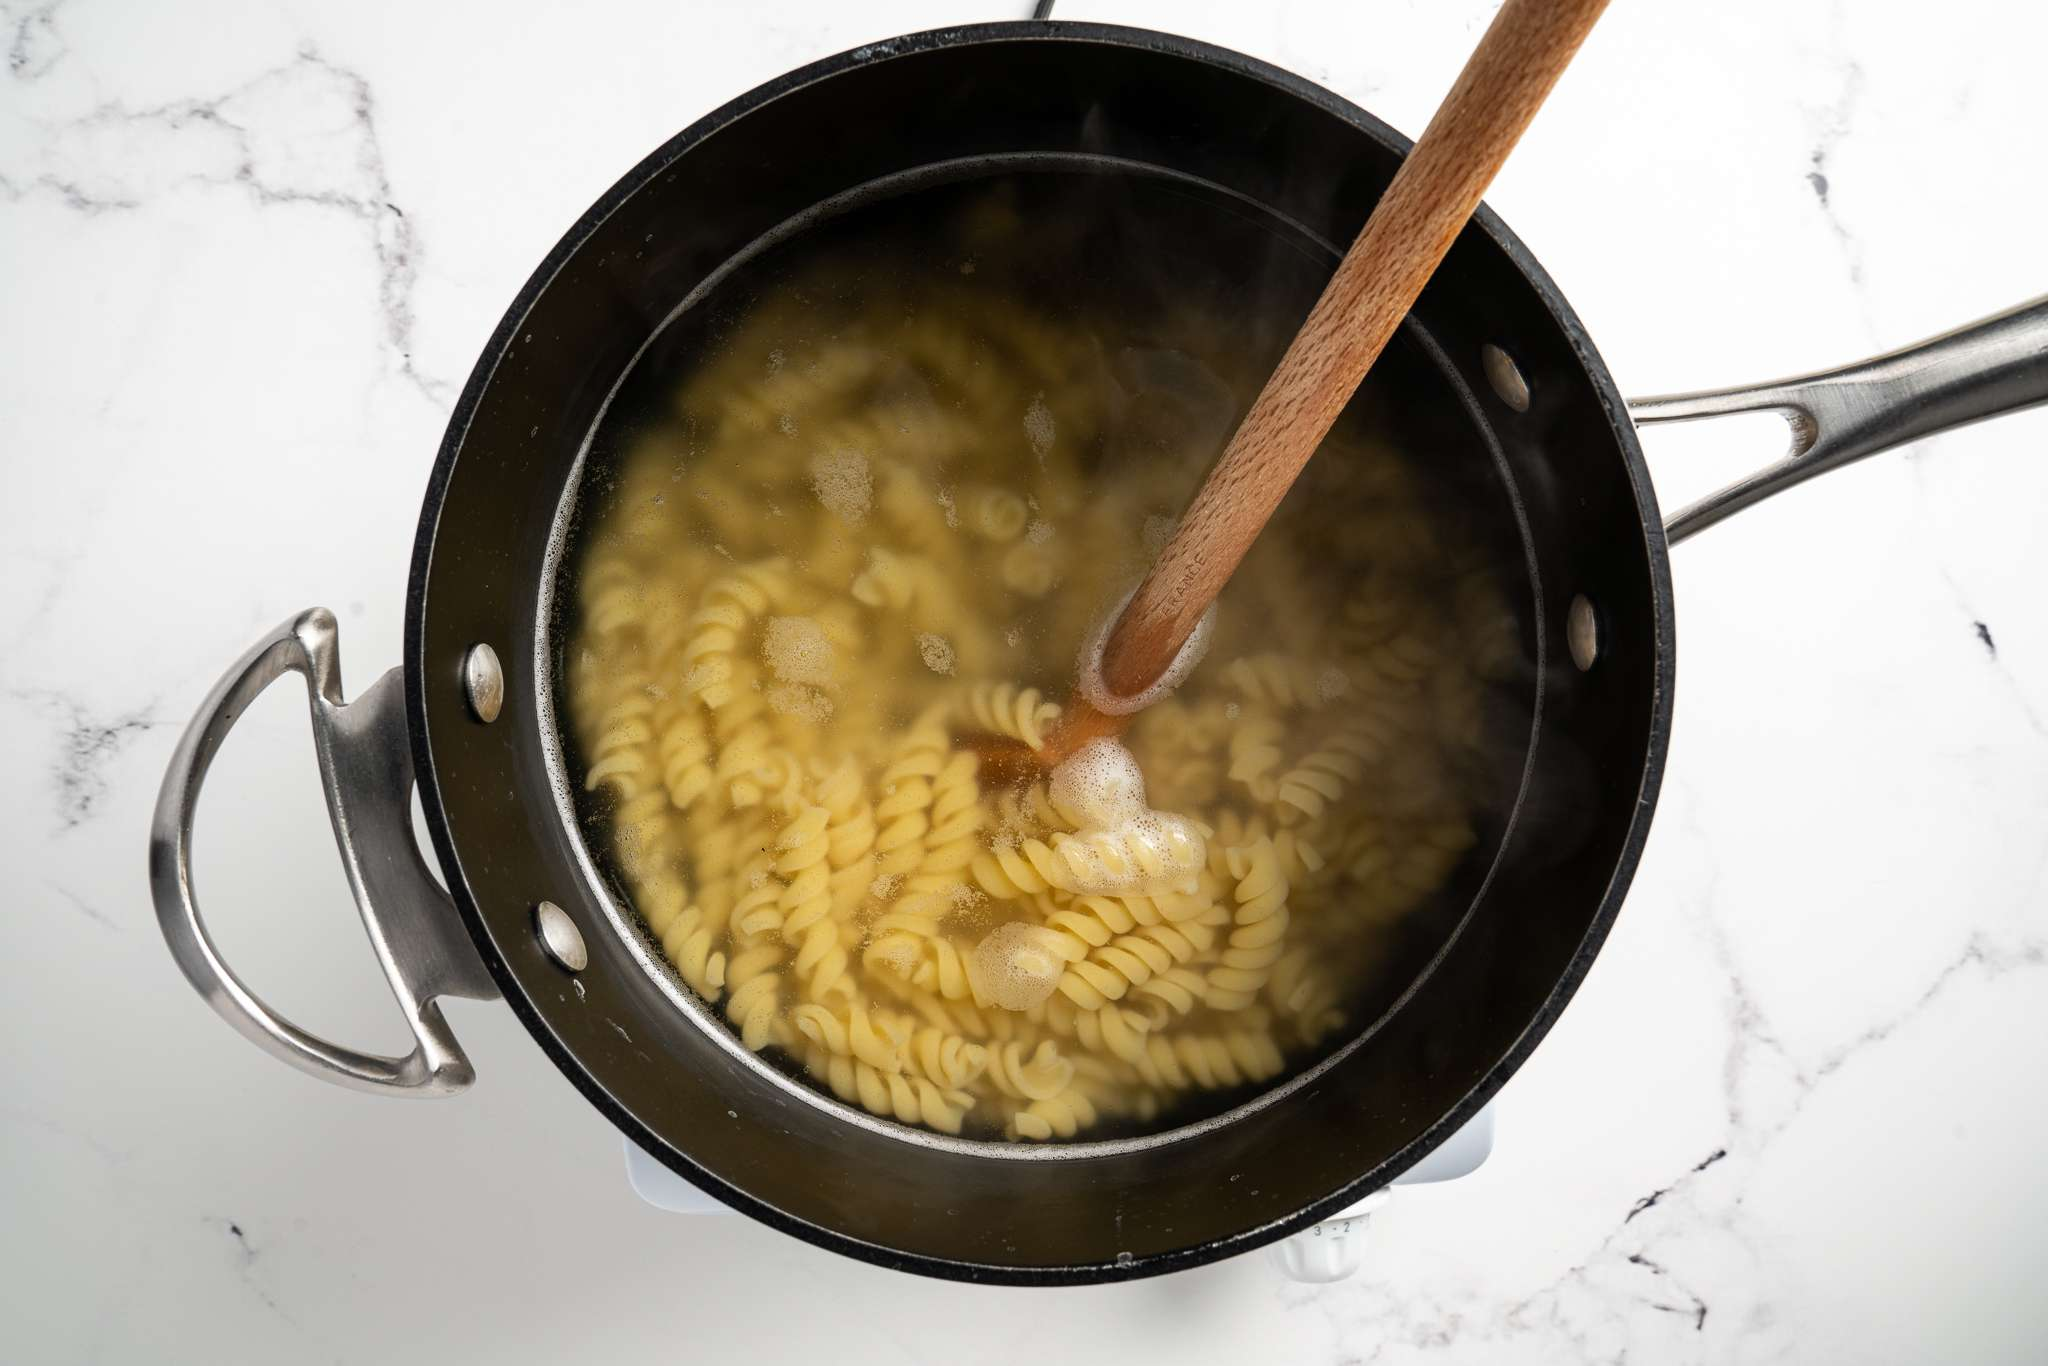 pasta cooking in a pot